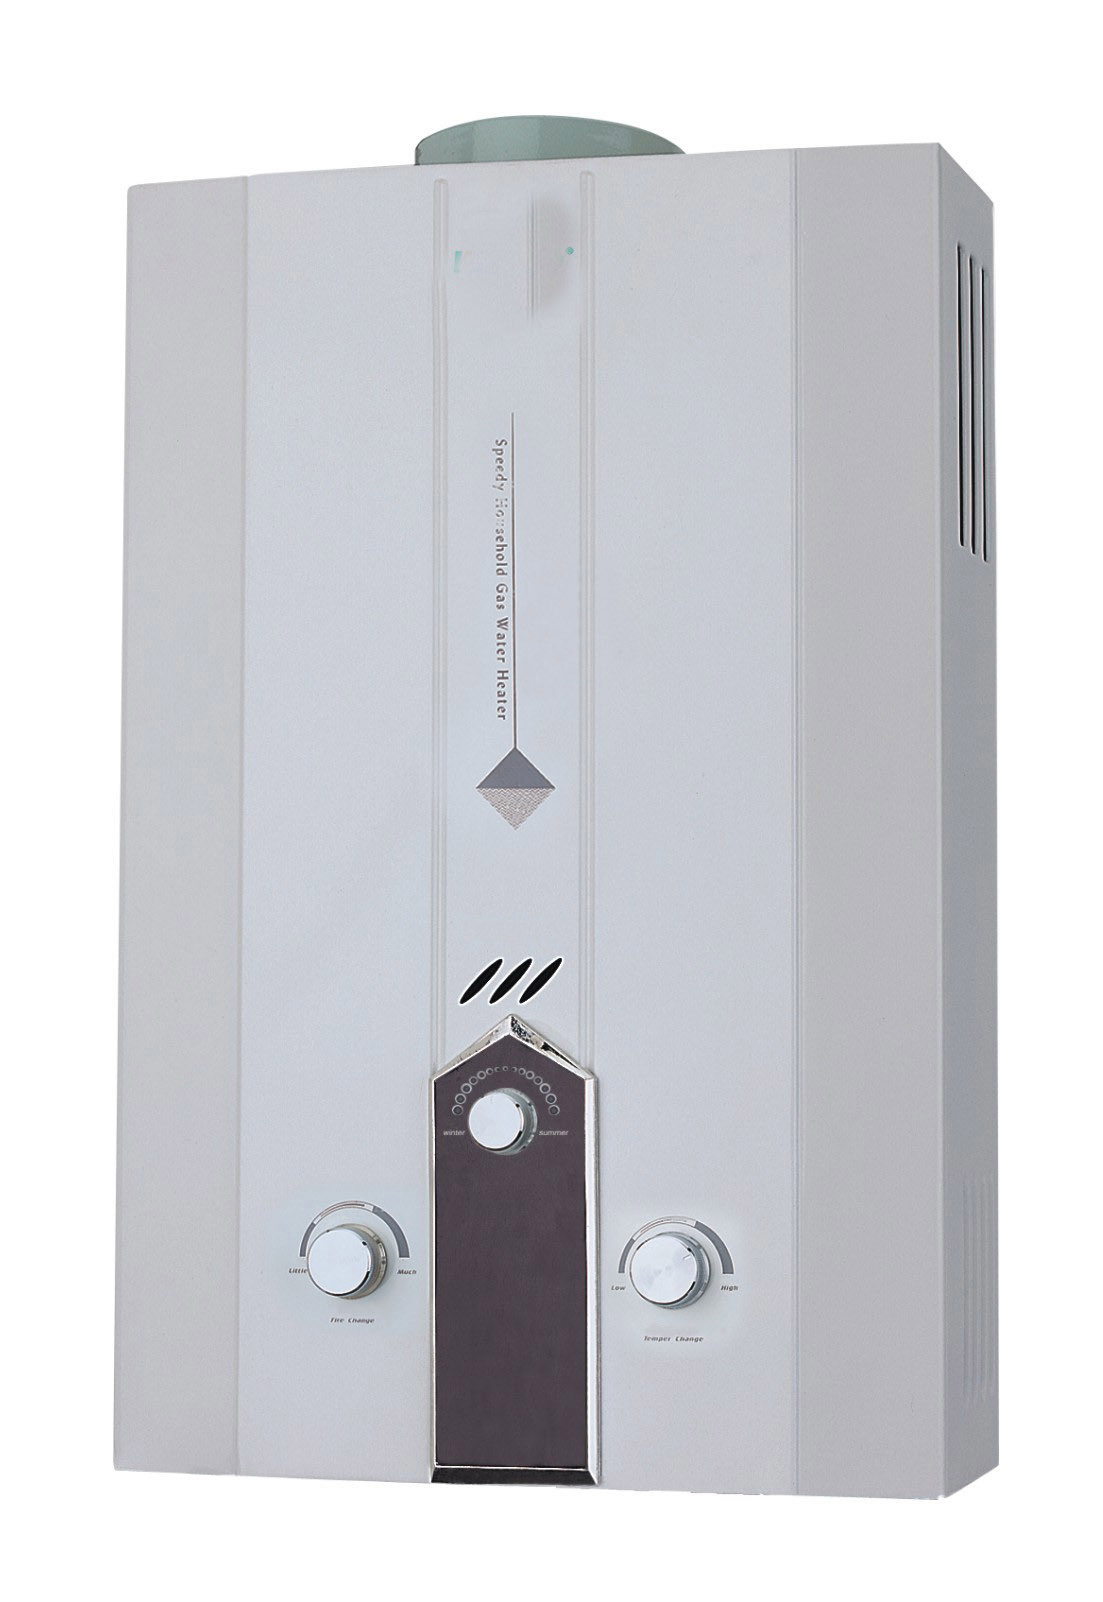 Elite Gas Water Heater with Built in Safety and Summer/Winter Switch (S39)